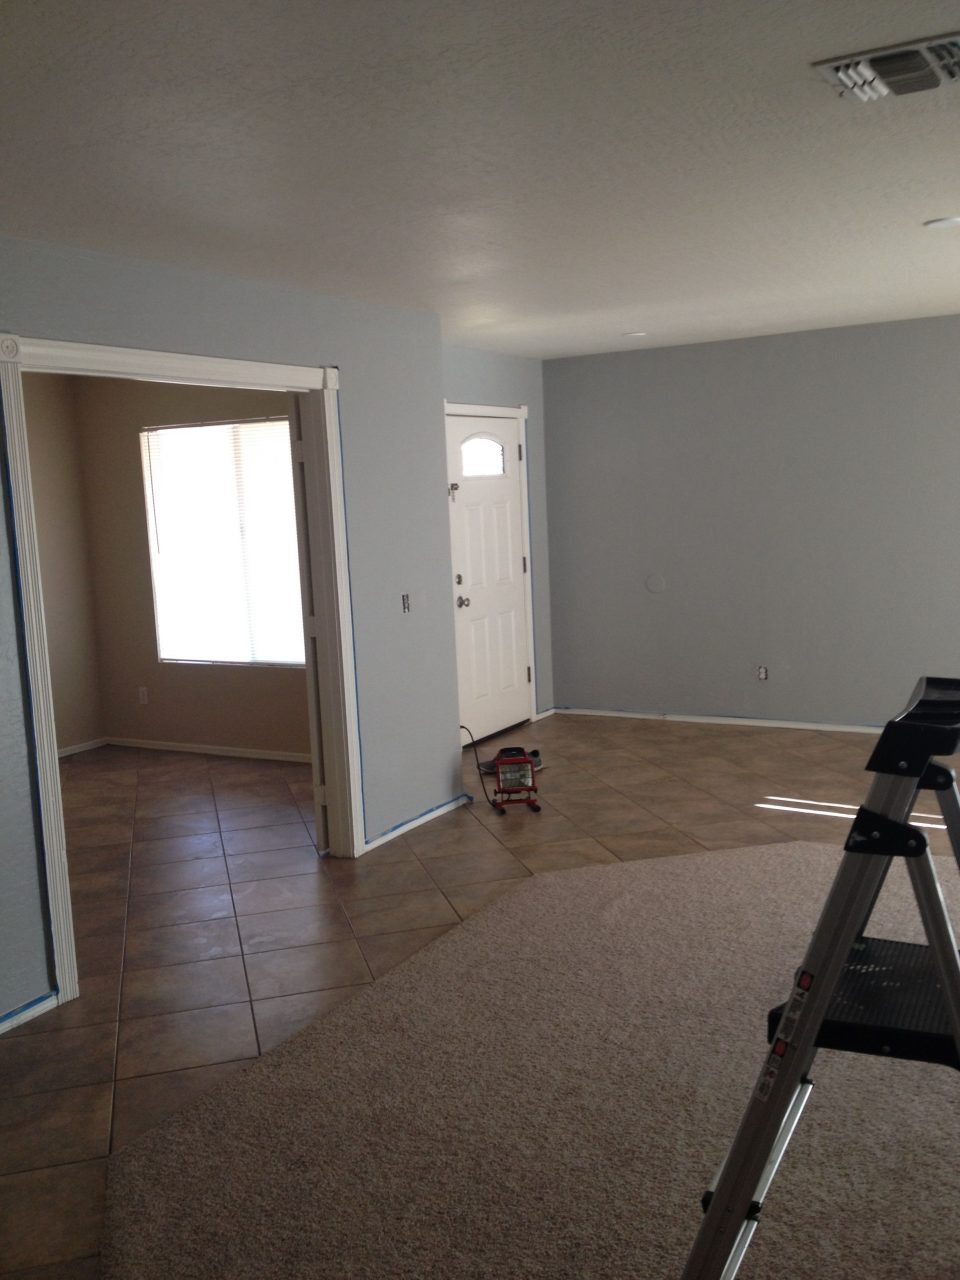 Valspar Urban Sunrise Blue Gray Paint Color In Living Room